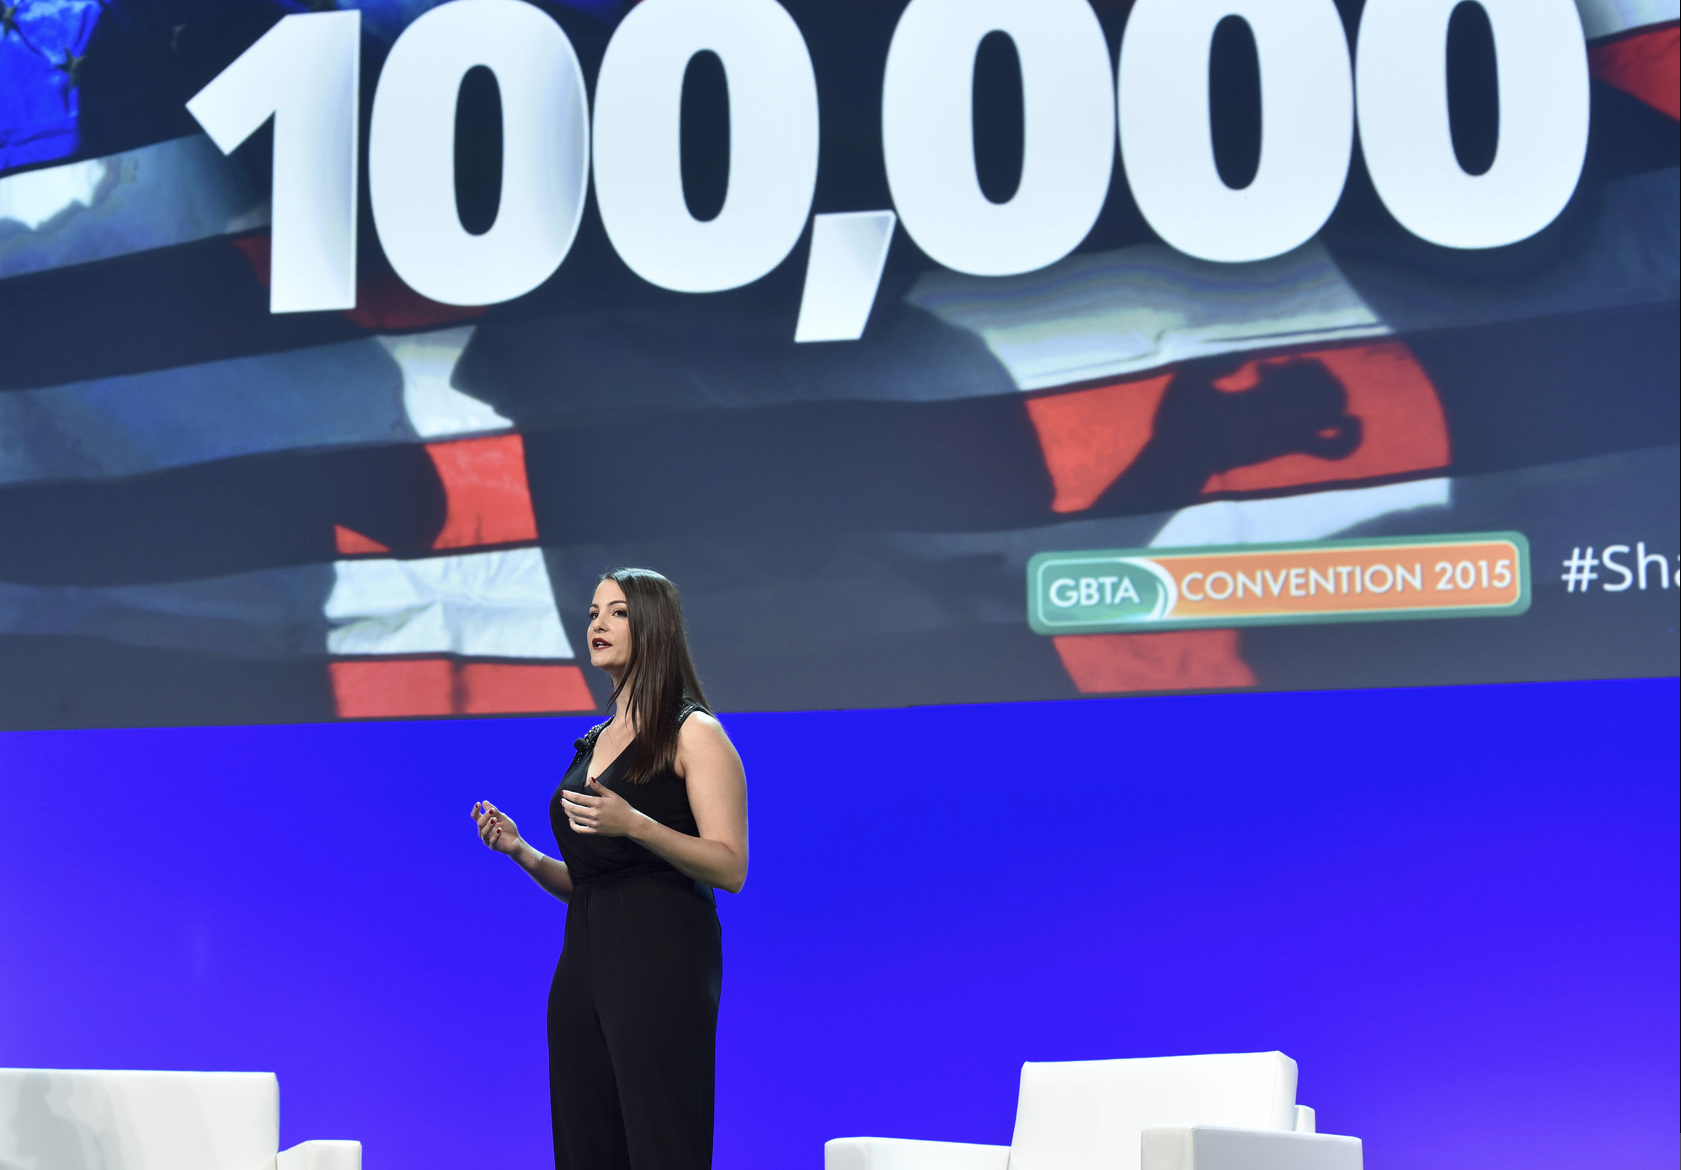 ECPAT-USA's Director of Private Sector Engagement, Michelle Guelbart, on the main stage at GBTA 2015.